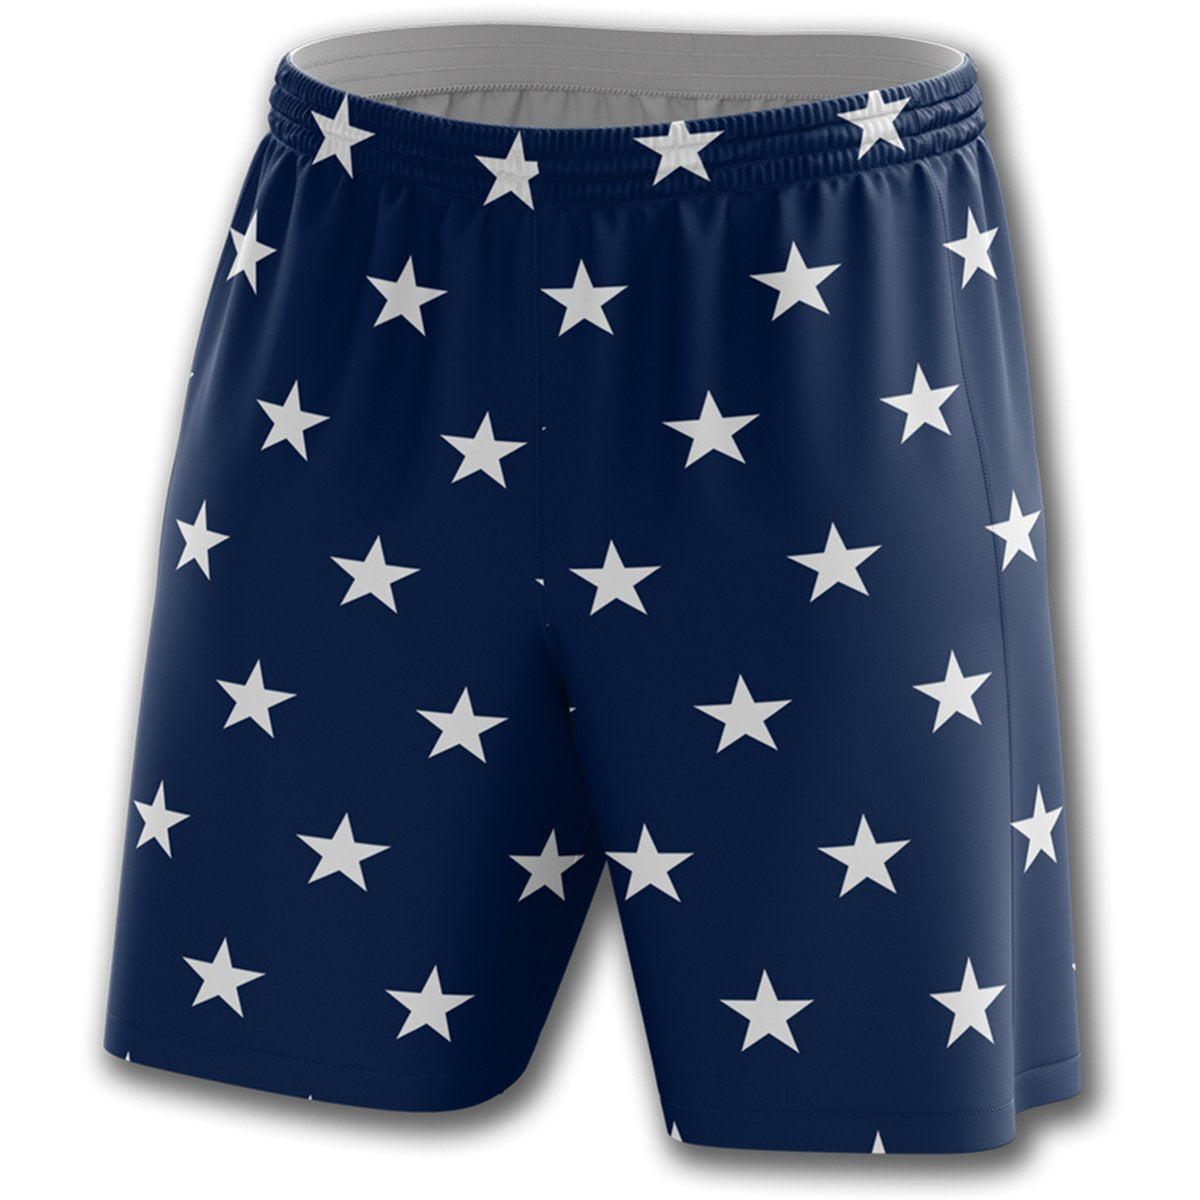 Stars Athletic Shorts - Greater Half